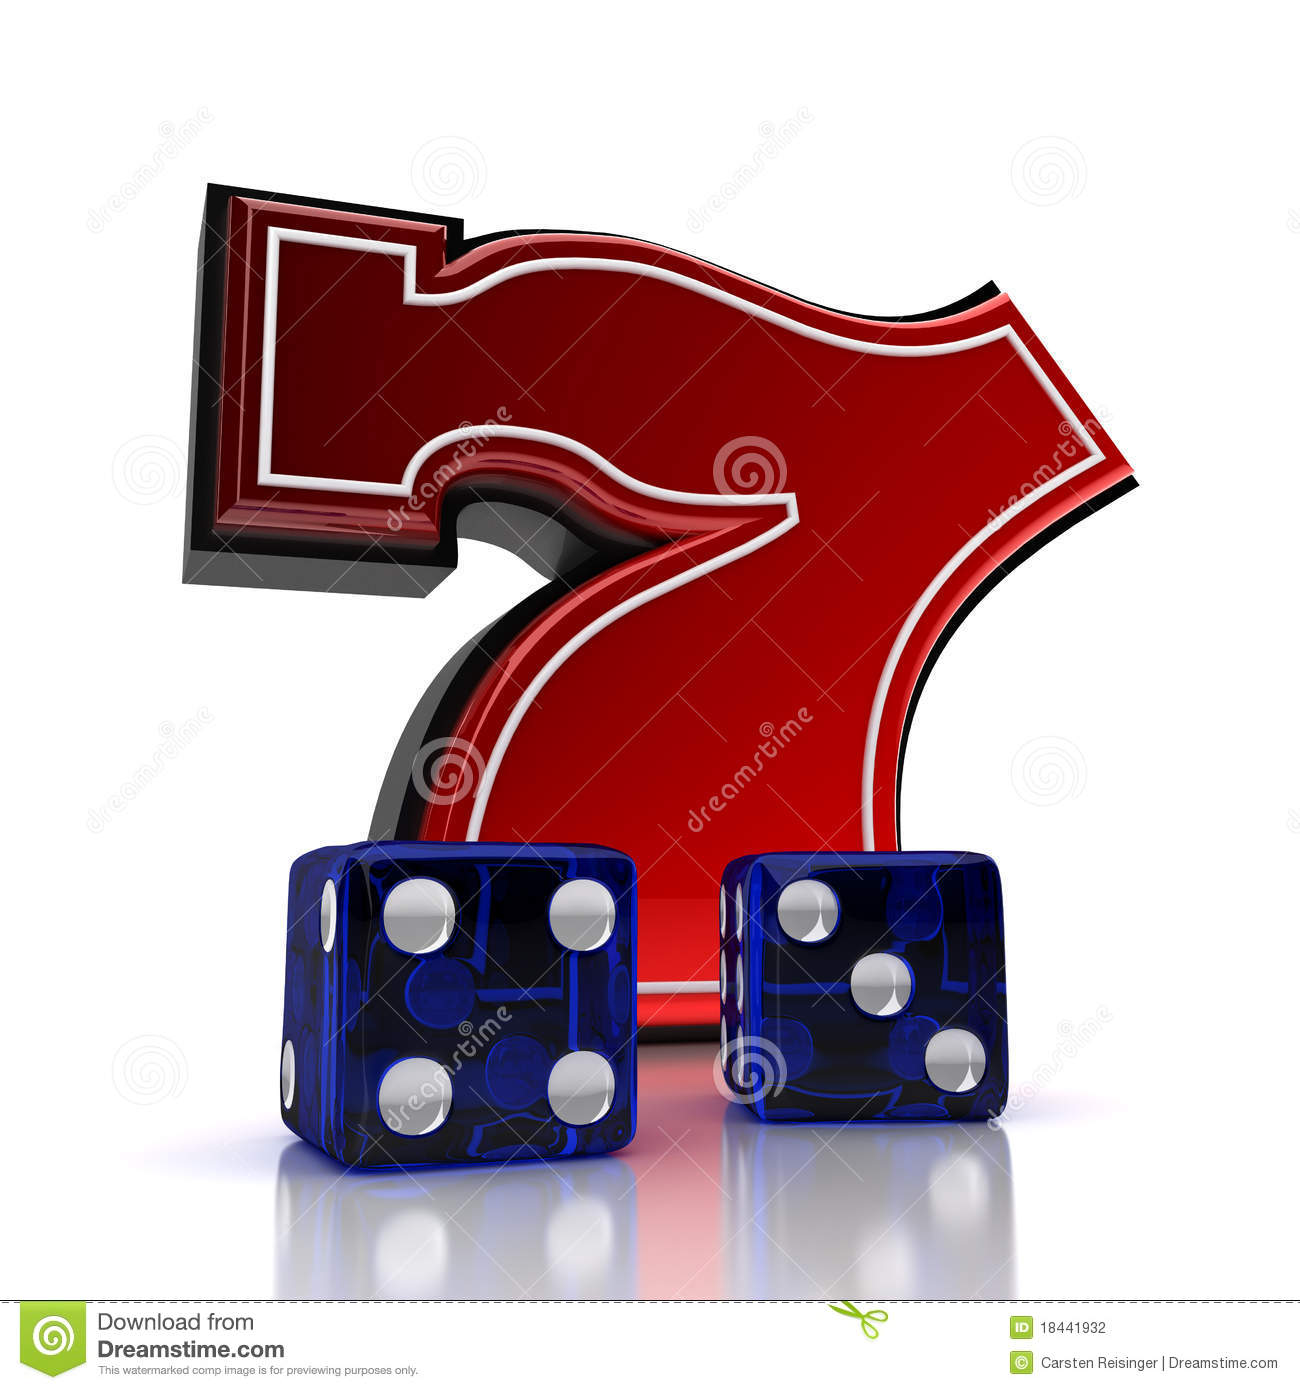 lucky number 7 dice